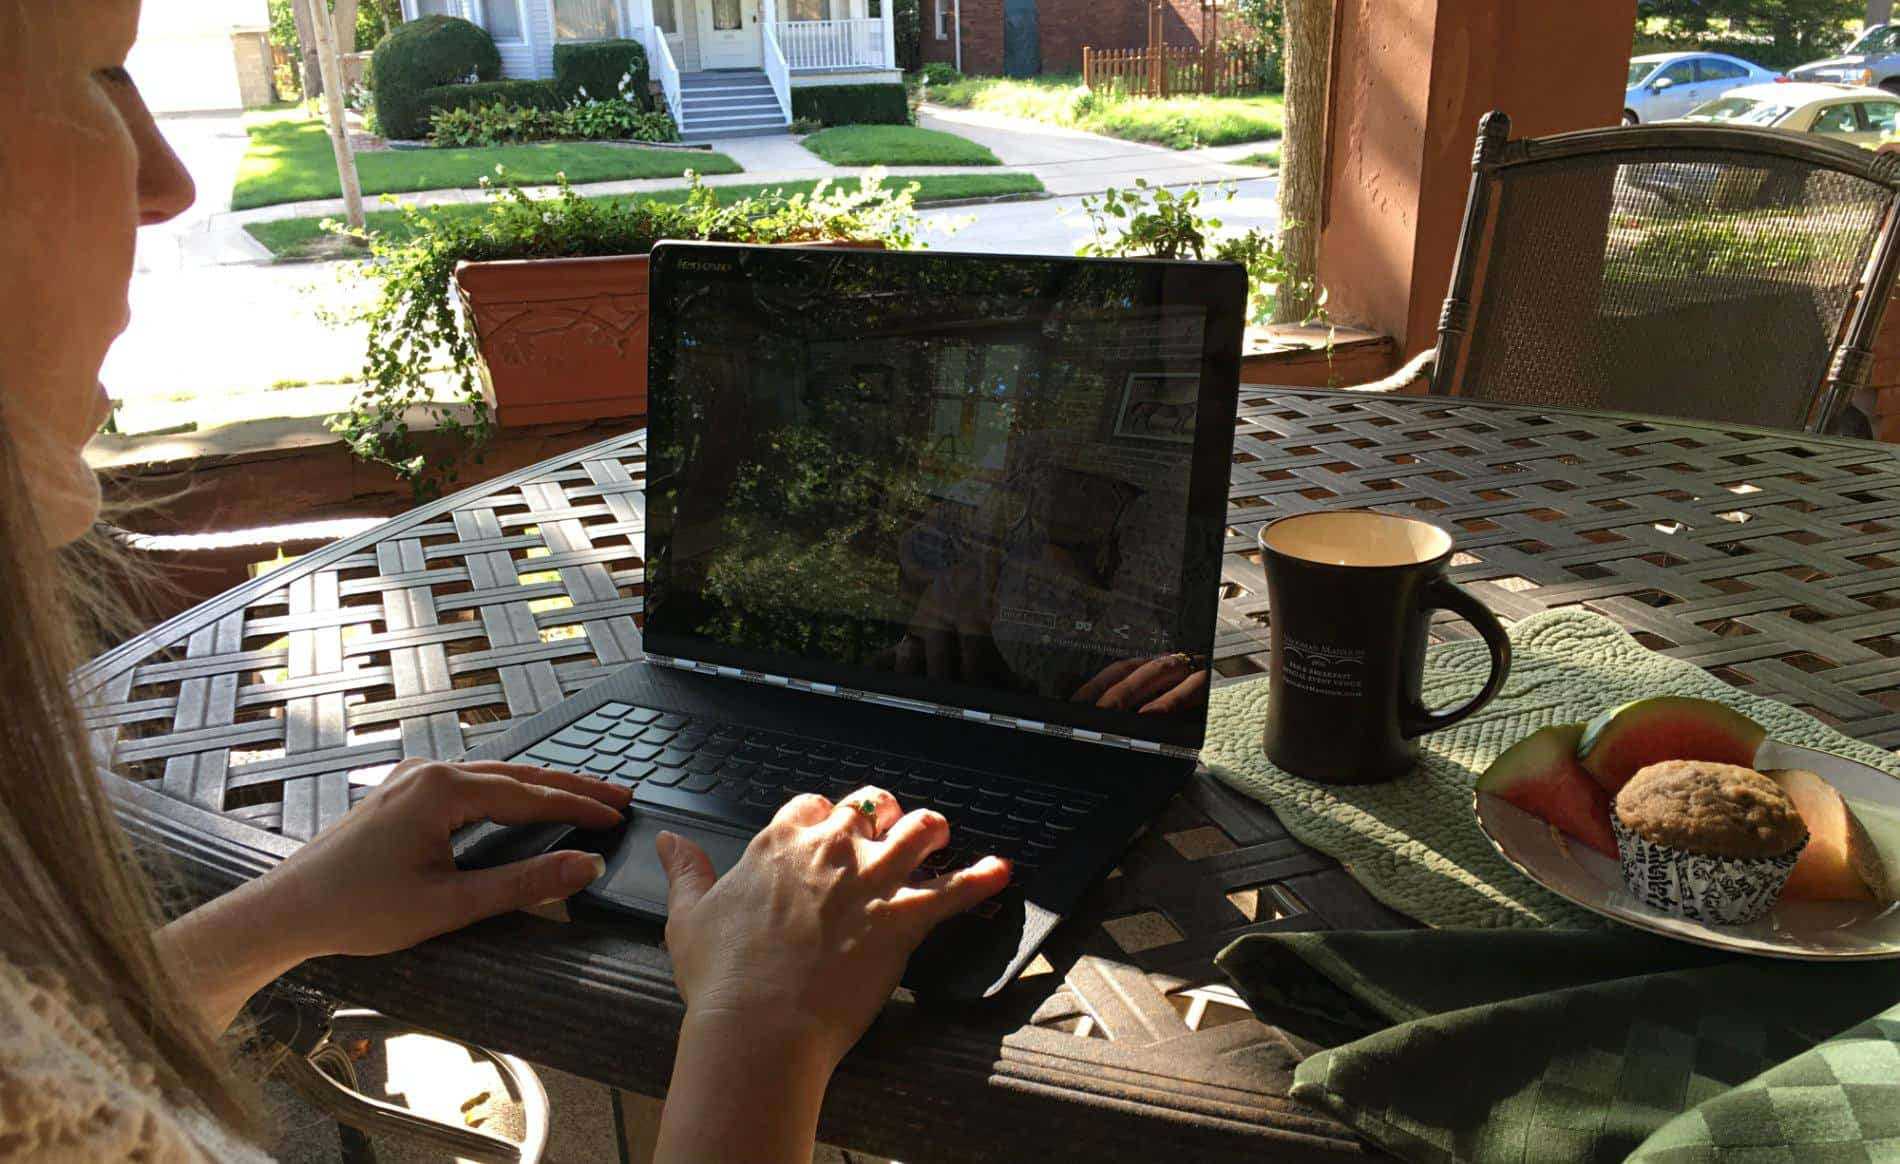 Woman sitting at a black patio table typing on her laptop with a mug, fresh melon and a muffin nearby